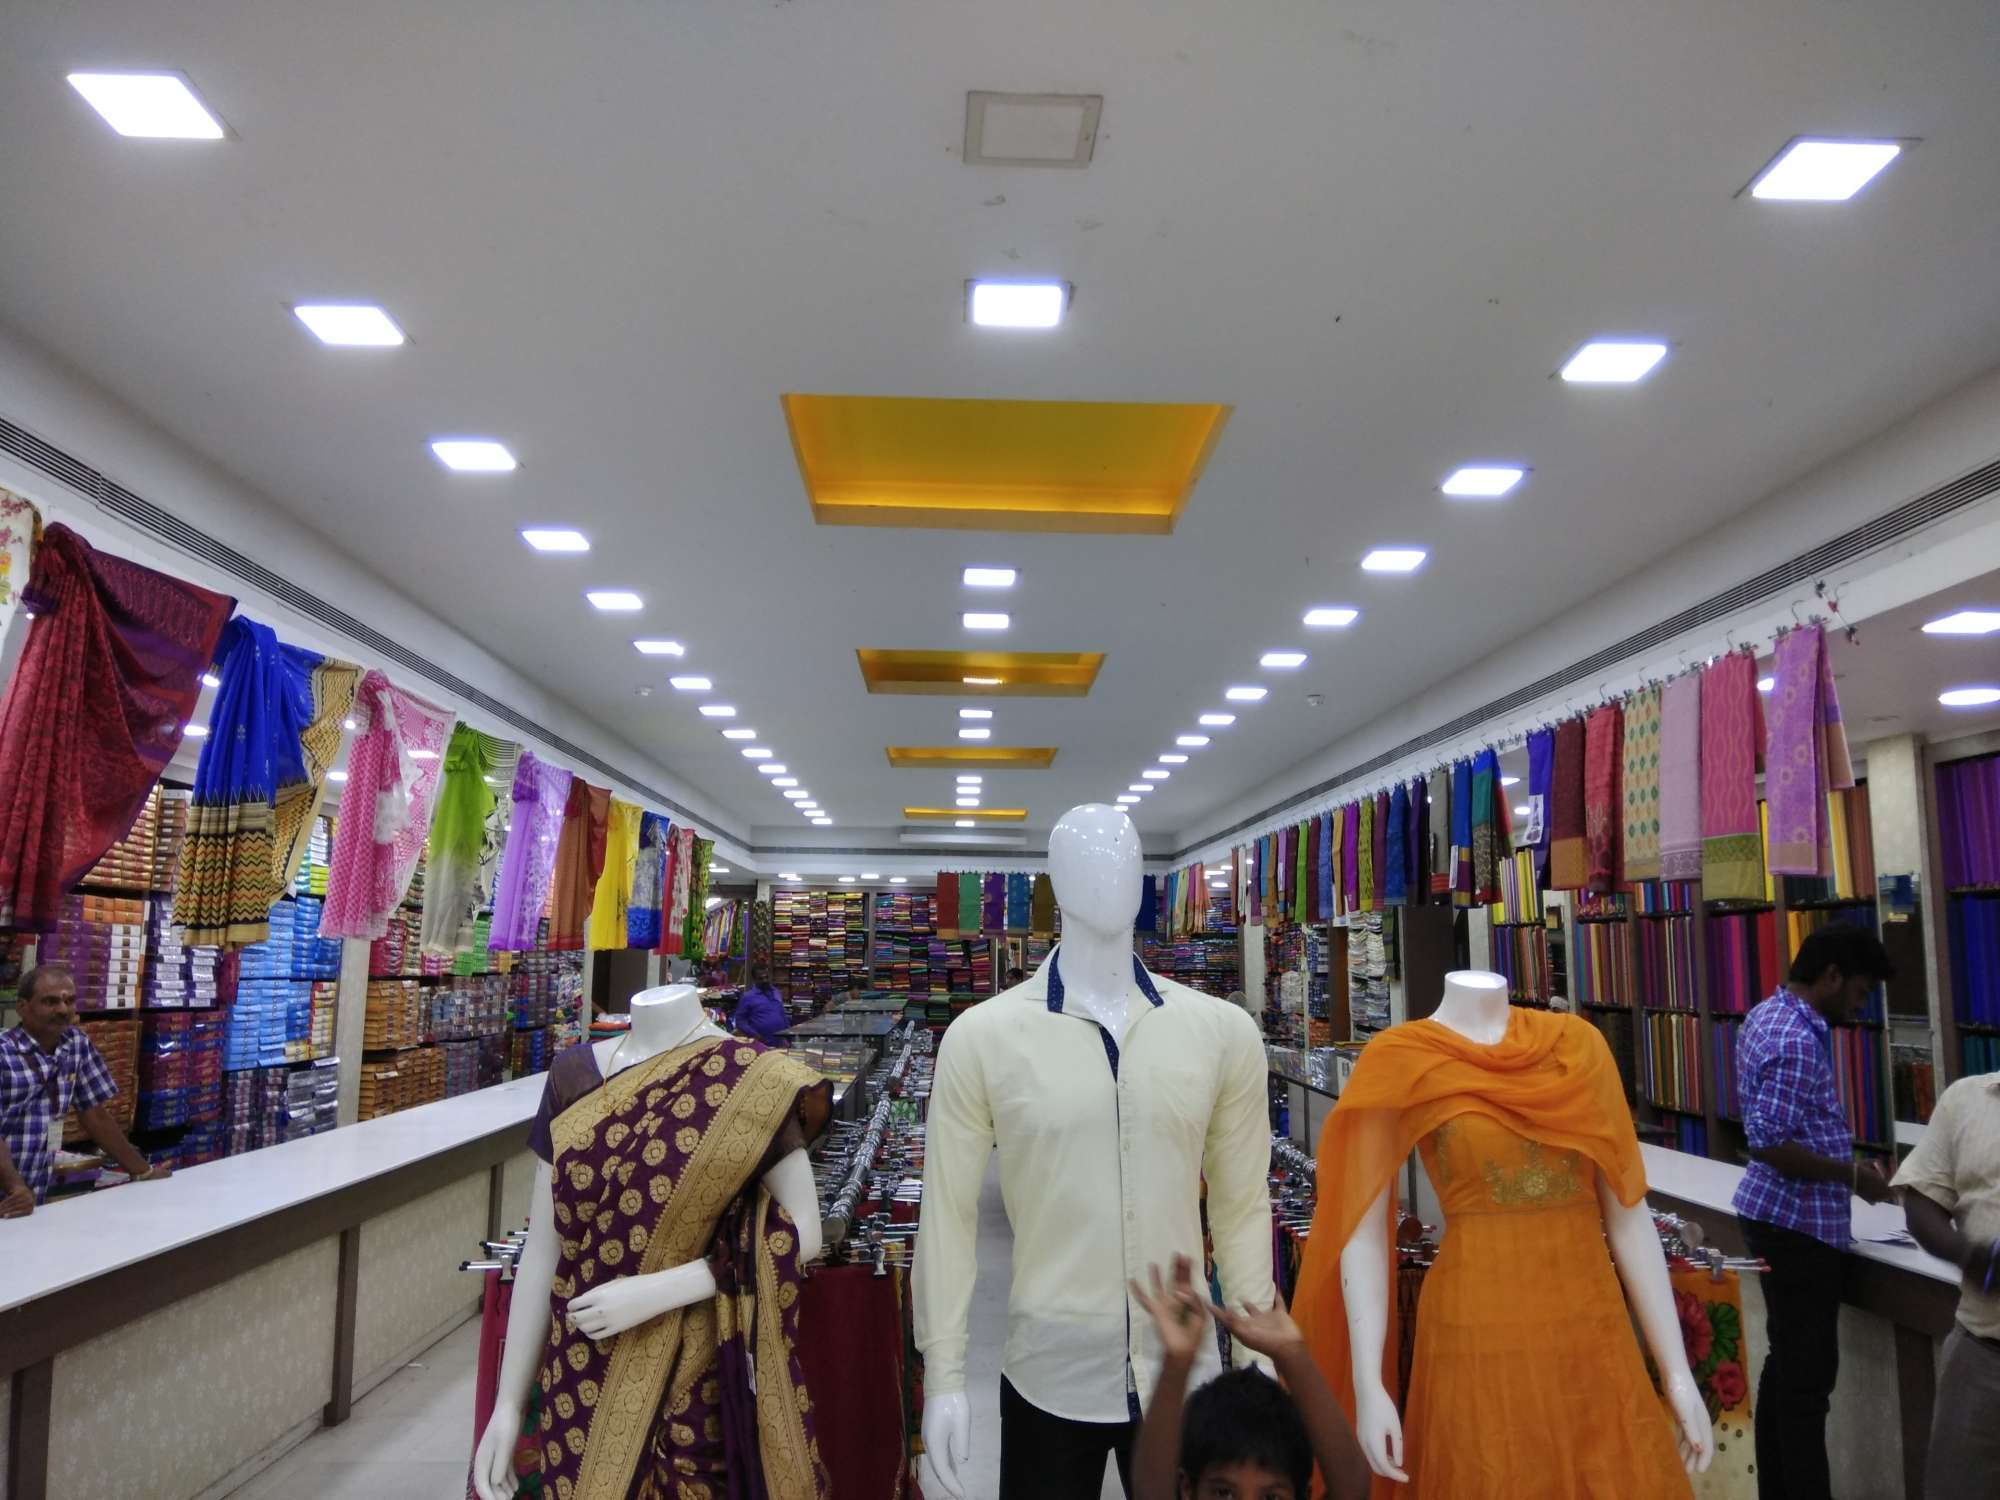 c0e160ca6d3 Top 100 Gents Readymade Garment Retailers in Karur - Best Readymade ...